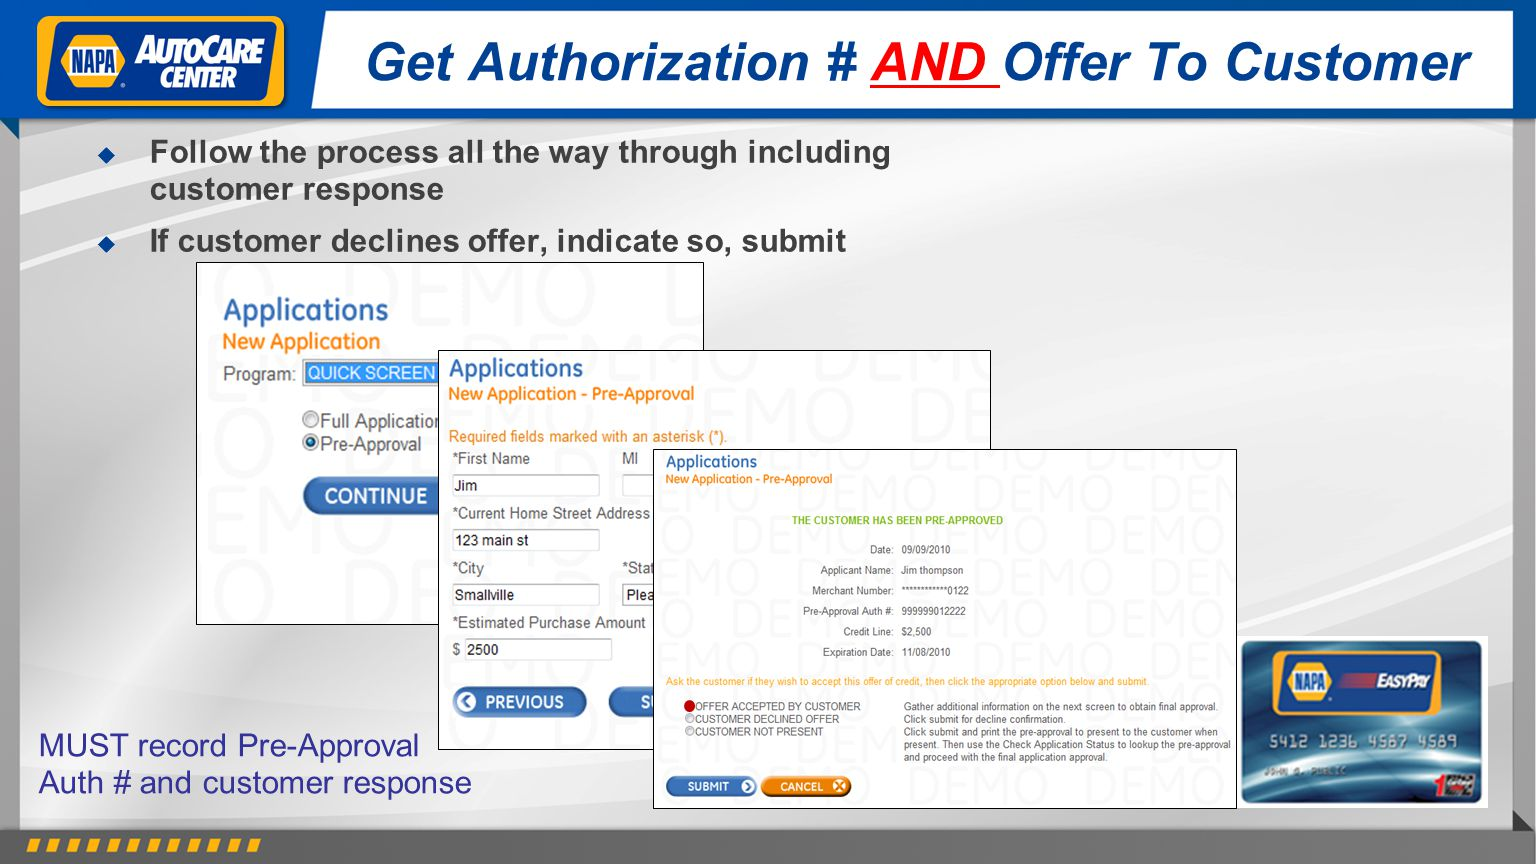 Get Authorization # AND Offer To Customer Follow the process all the way through including customer response If customer declines offer, indicate so, submit MUST record Pre-Approval Auth # and customer response